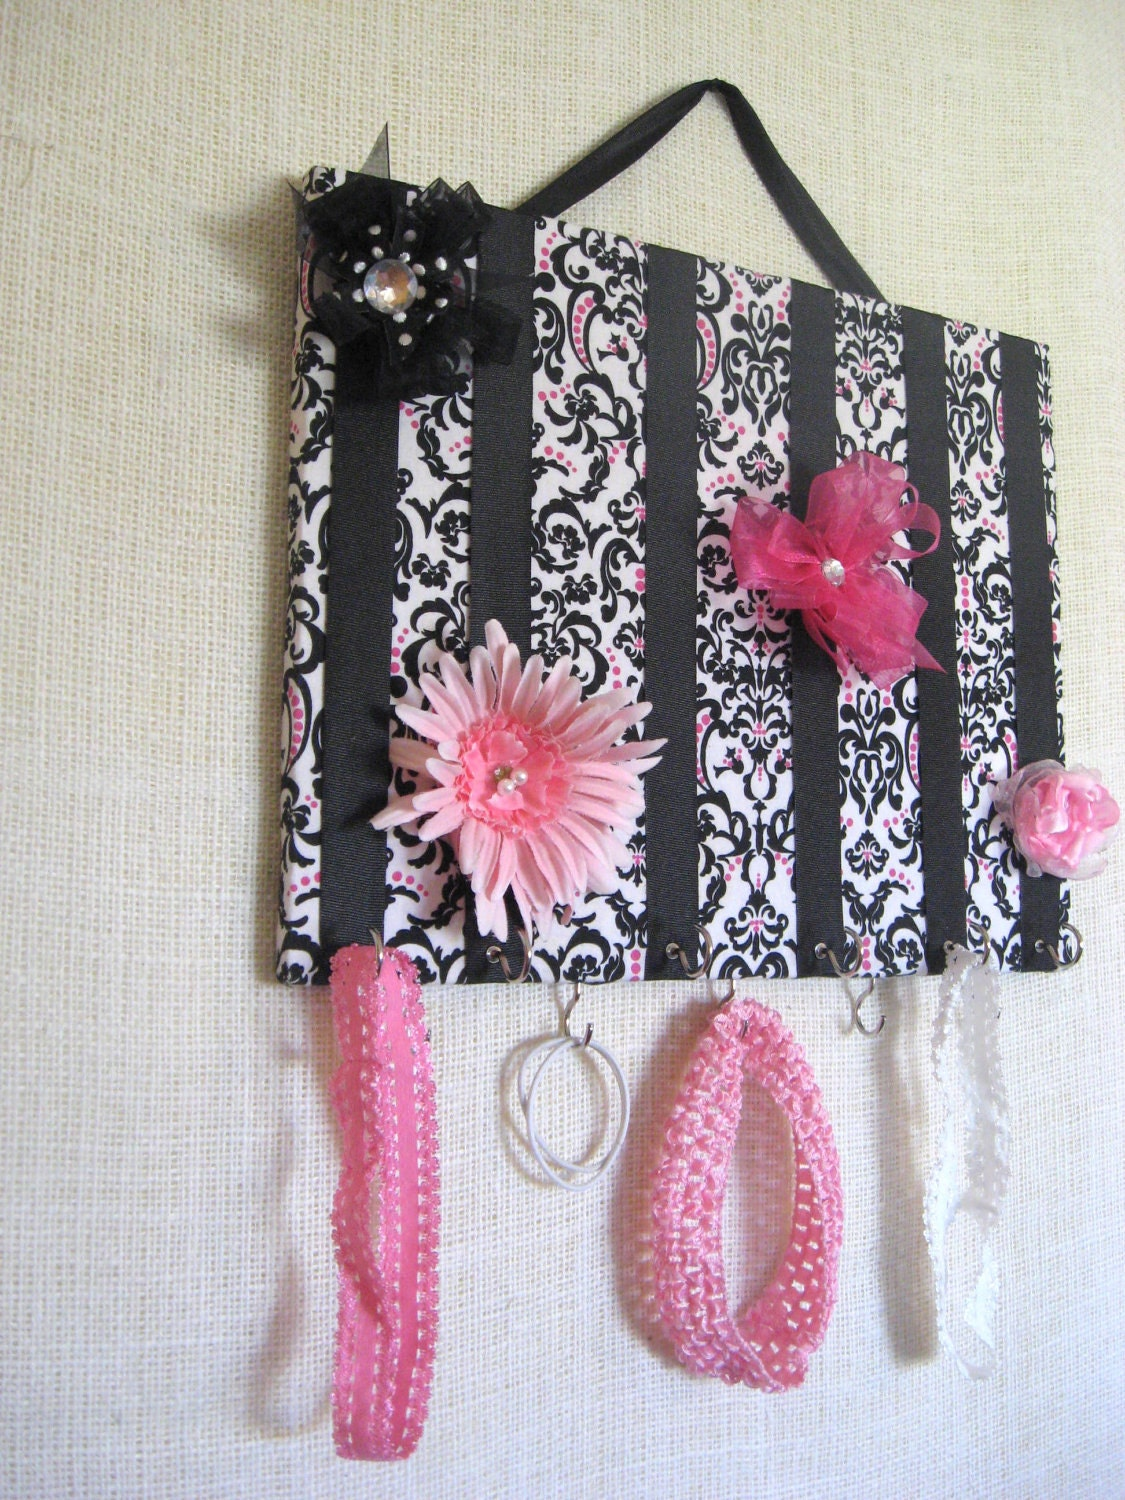 JEWELRY ORGANIZER, Jewelry Bow Board Black and White Damask with Pink Accents- 11x14 inches, 11 Large Hooks